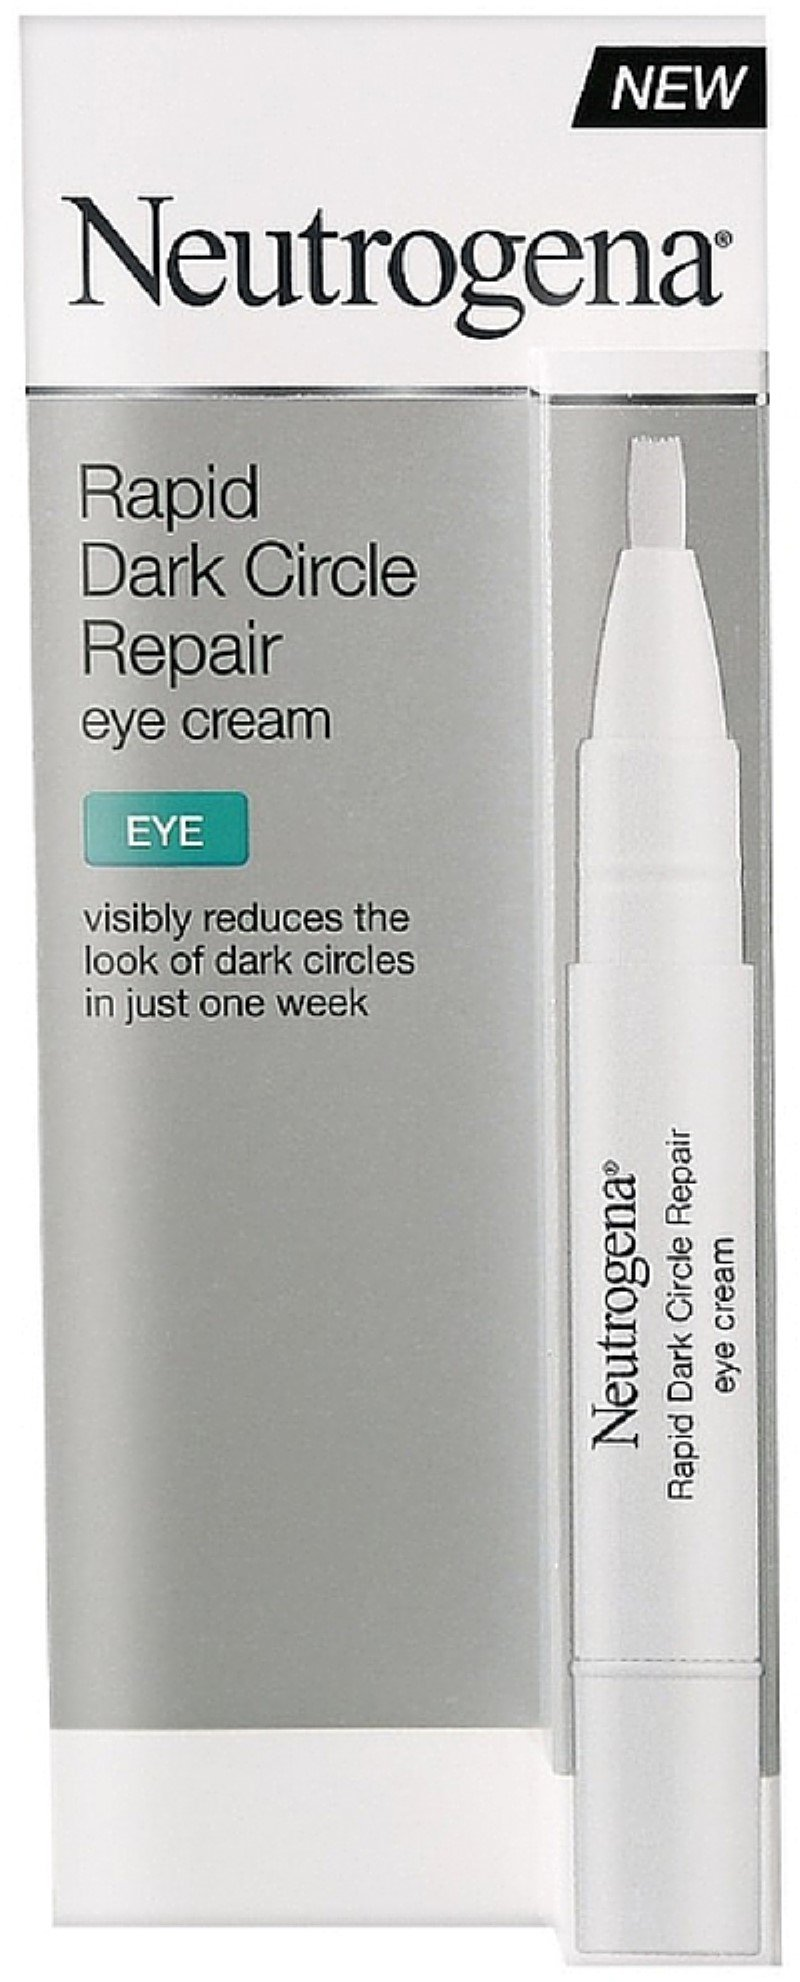 Neutrogena Rapid Dark Circle Repair Eye Cream, Nourishing & Brightening Eye Cream for Tired Eyes.13 fl. oz